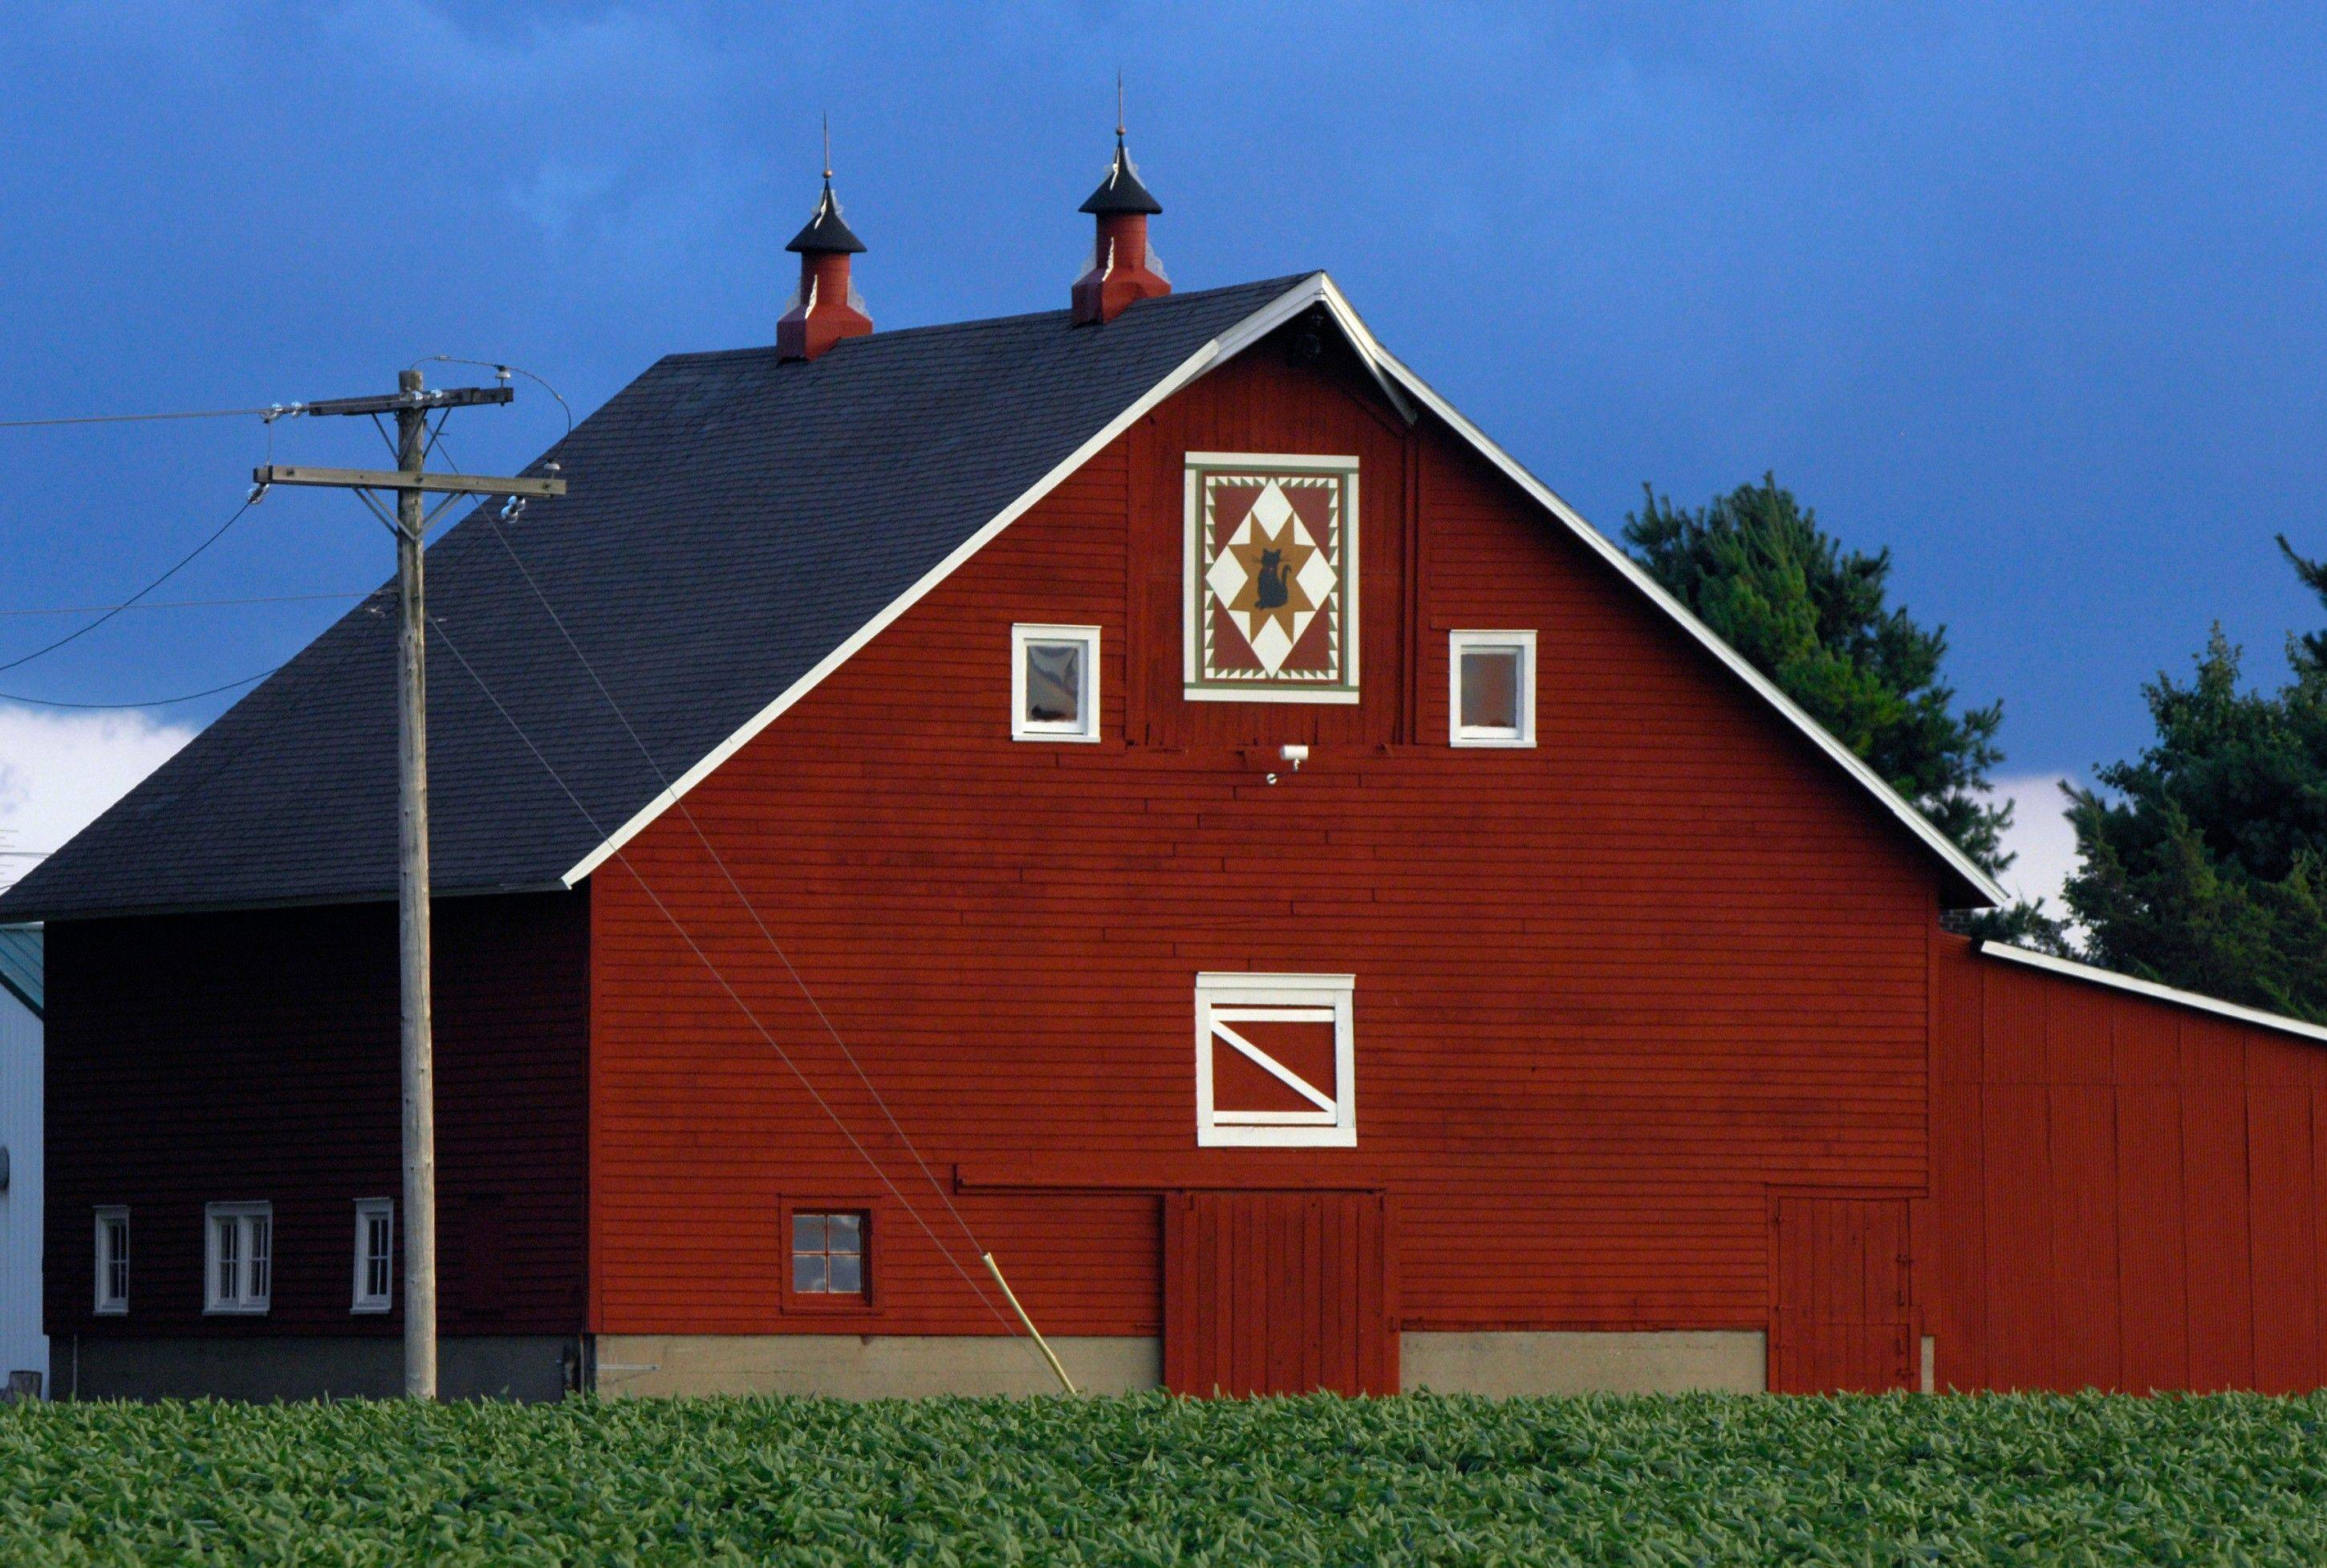 Quilt art painted by Jo Morrison decorates one of her barns east of Towanda, Ill.